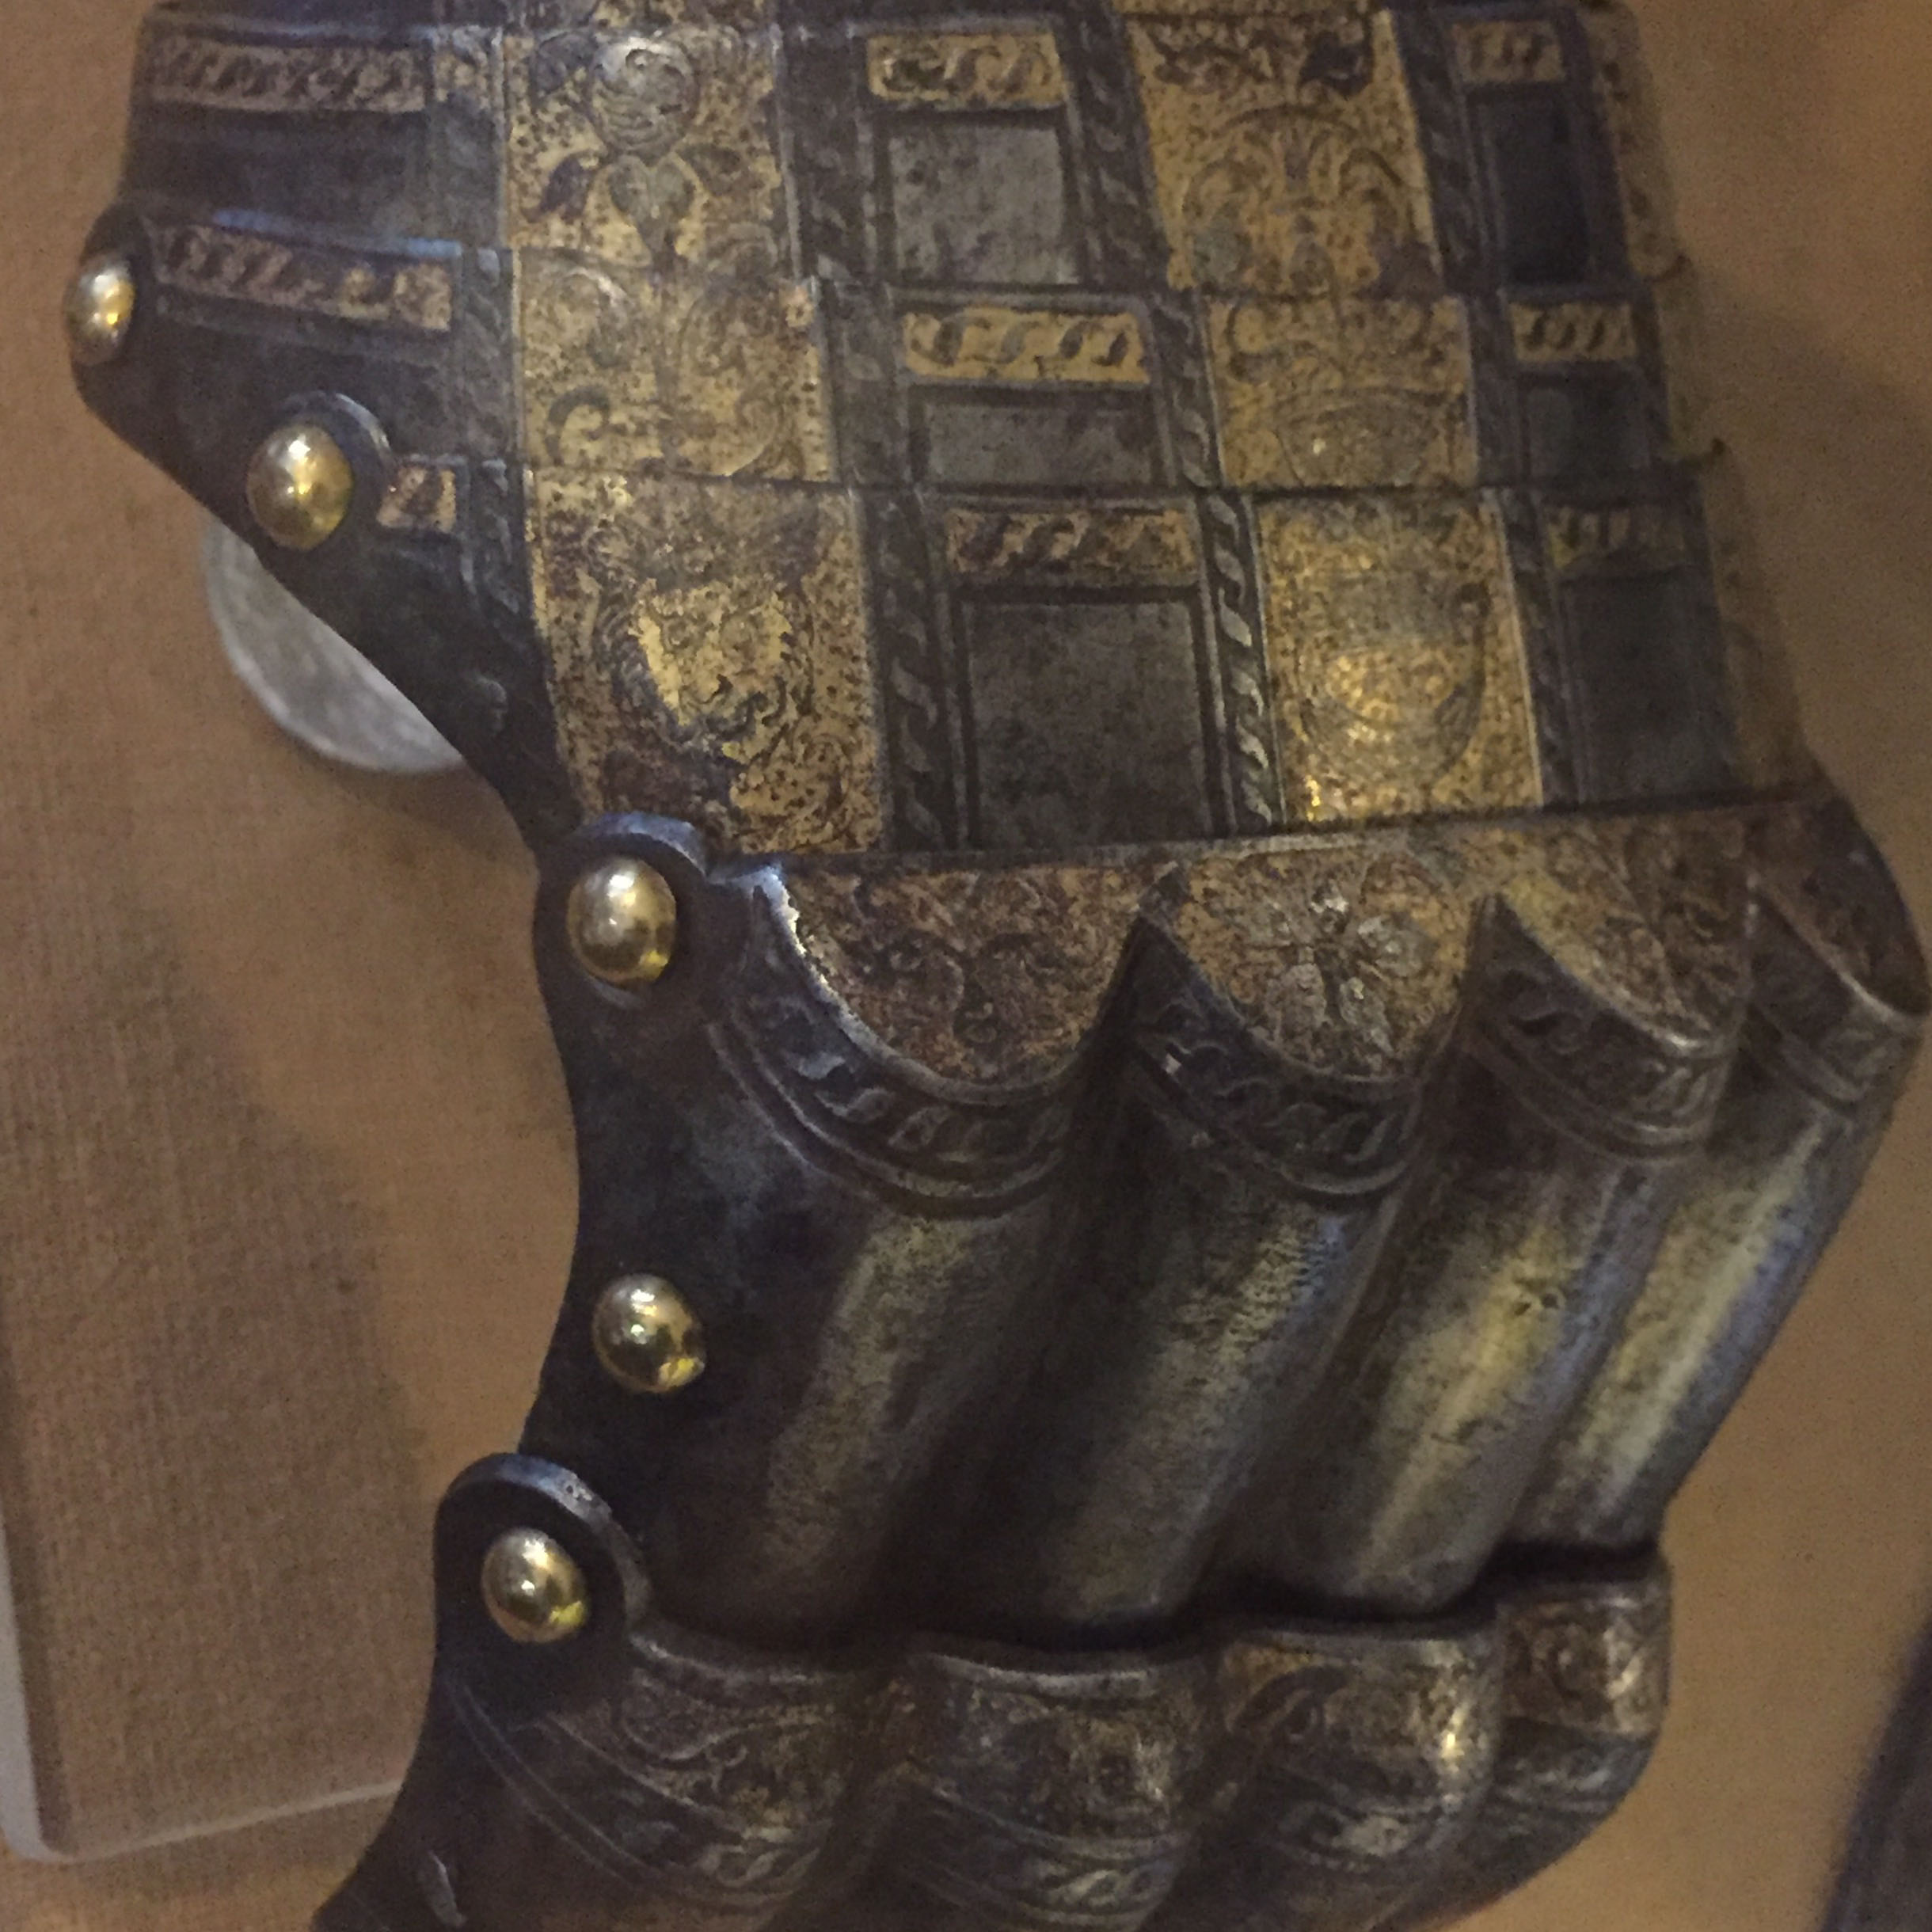 010116 – Gloves – Wallace Collection, London